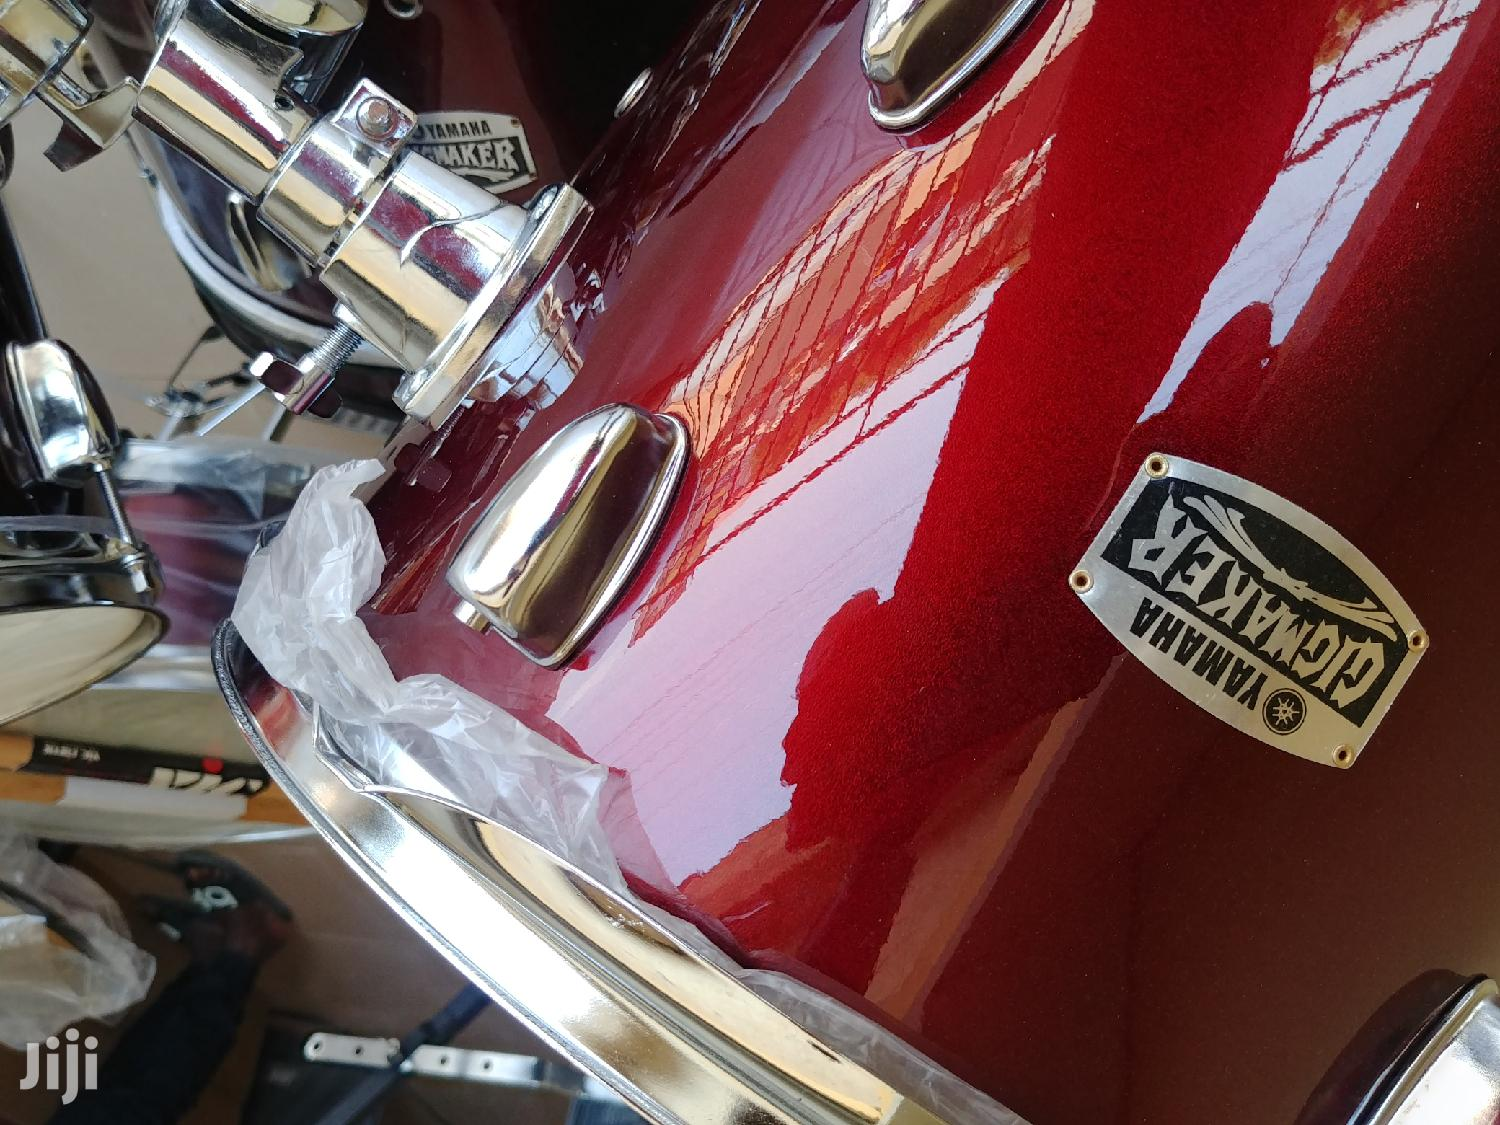 5pcs Yamaha GIGMAKER Drum Set | Musical Instruments & Gear for sale in Kokomlemle, Greater Accra, Ghana